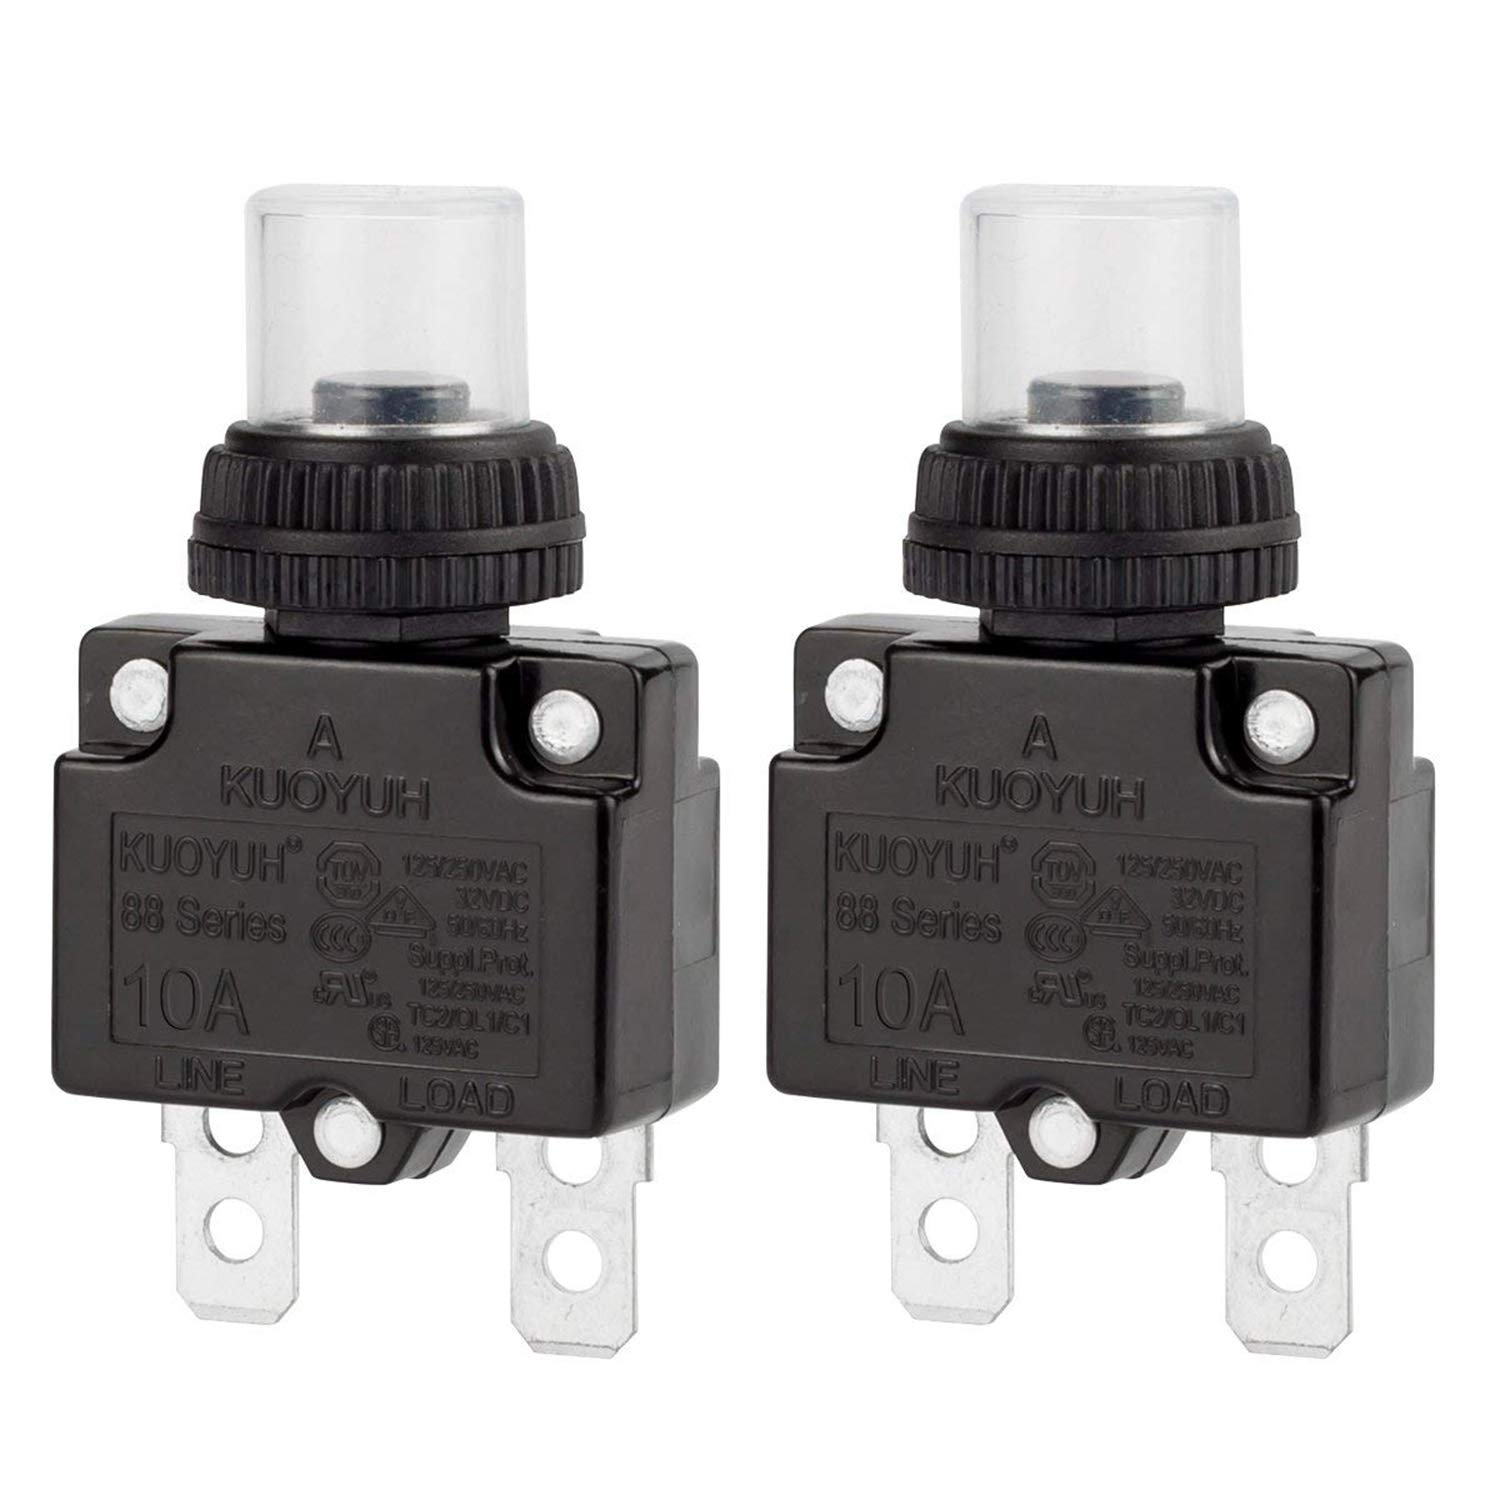 Circuit Breaker, DIYhz Thermal Overload Circuit Breaker 88 Series 10A 32V DC 125/250VAC 50/60Hz Push Button Circuit Breaker Reset Boot Switch and Waterproof Button Transparent Cap 2 Pcs